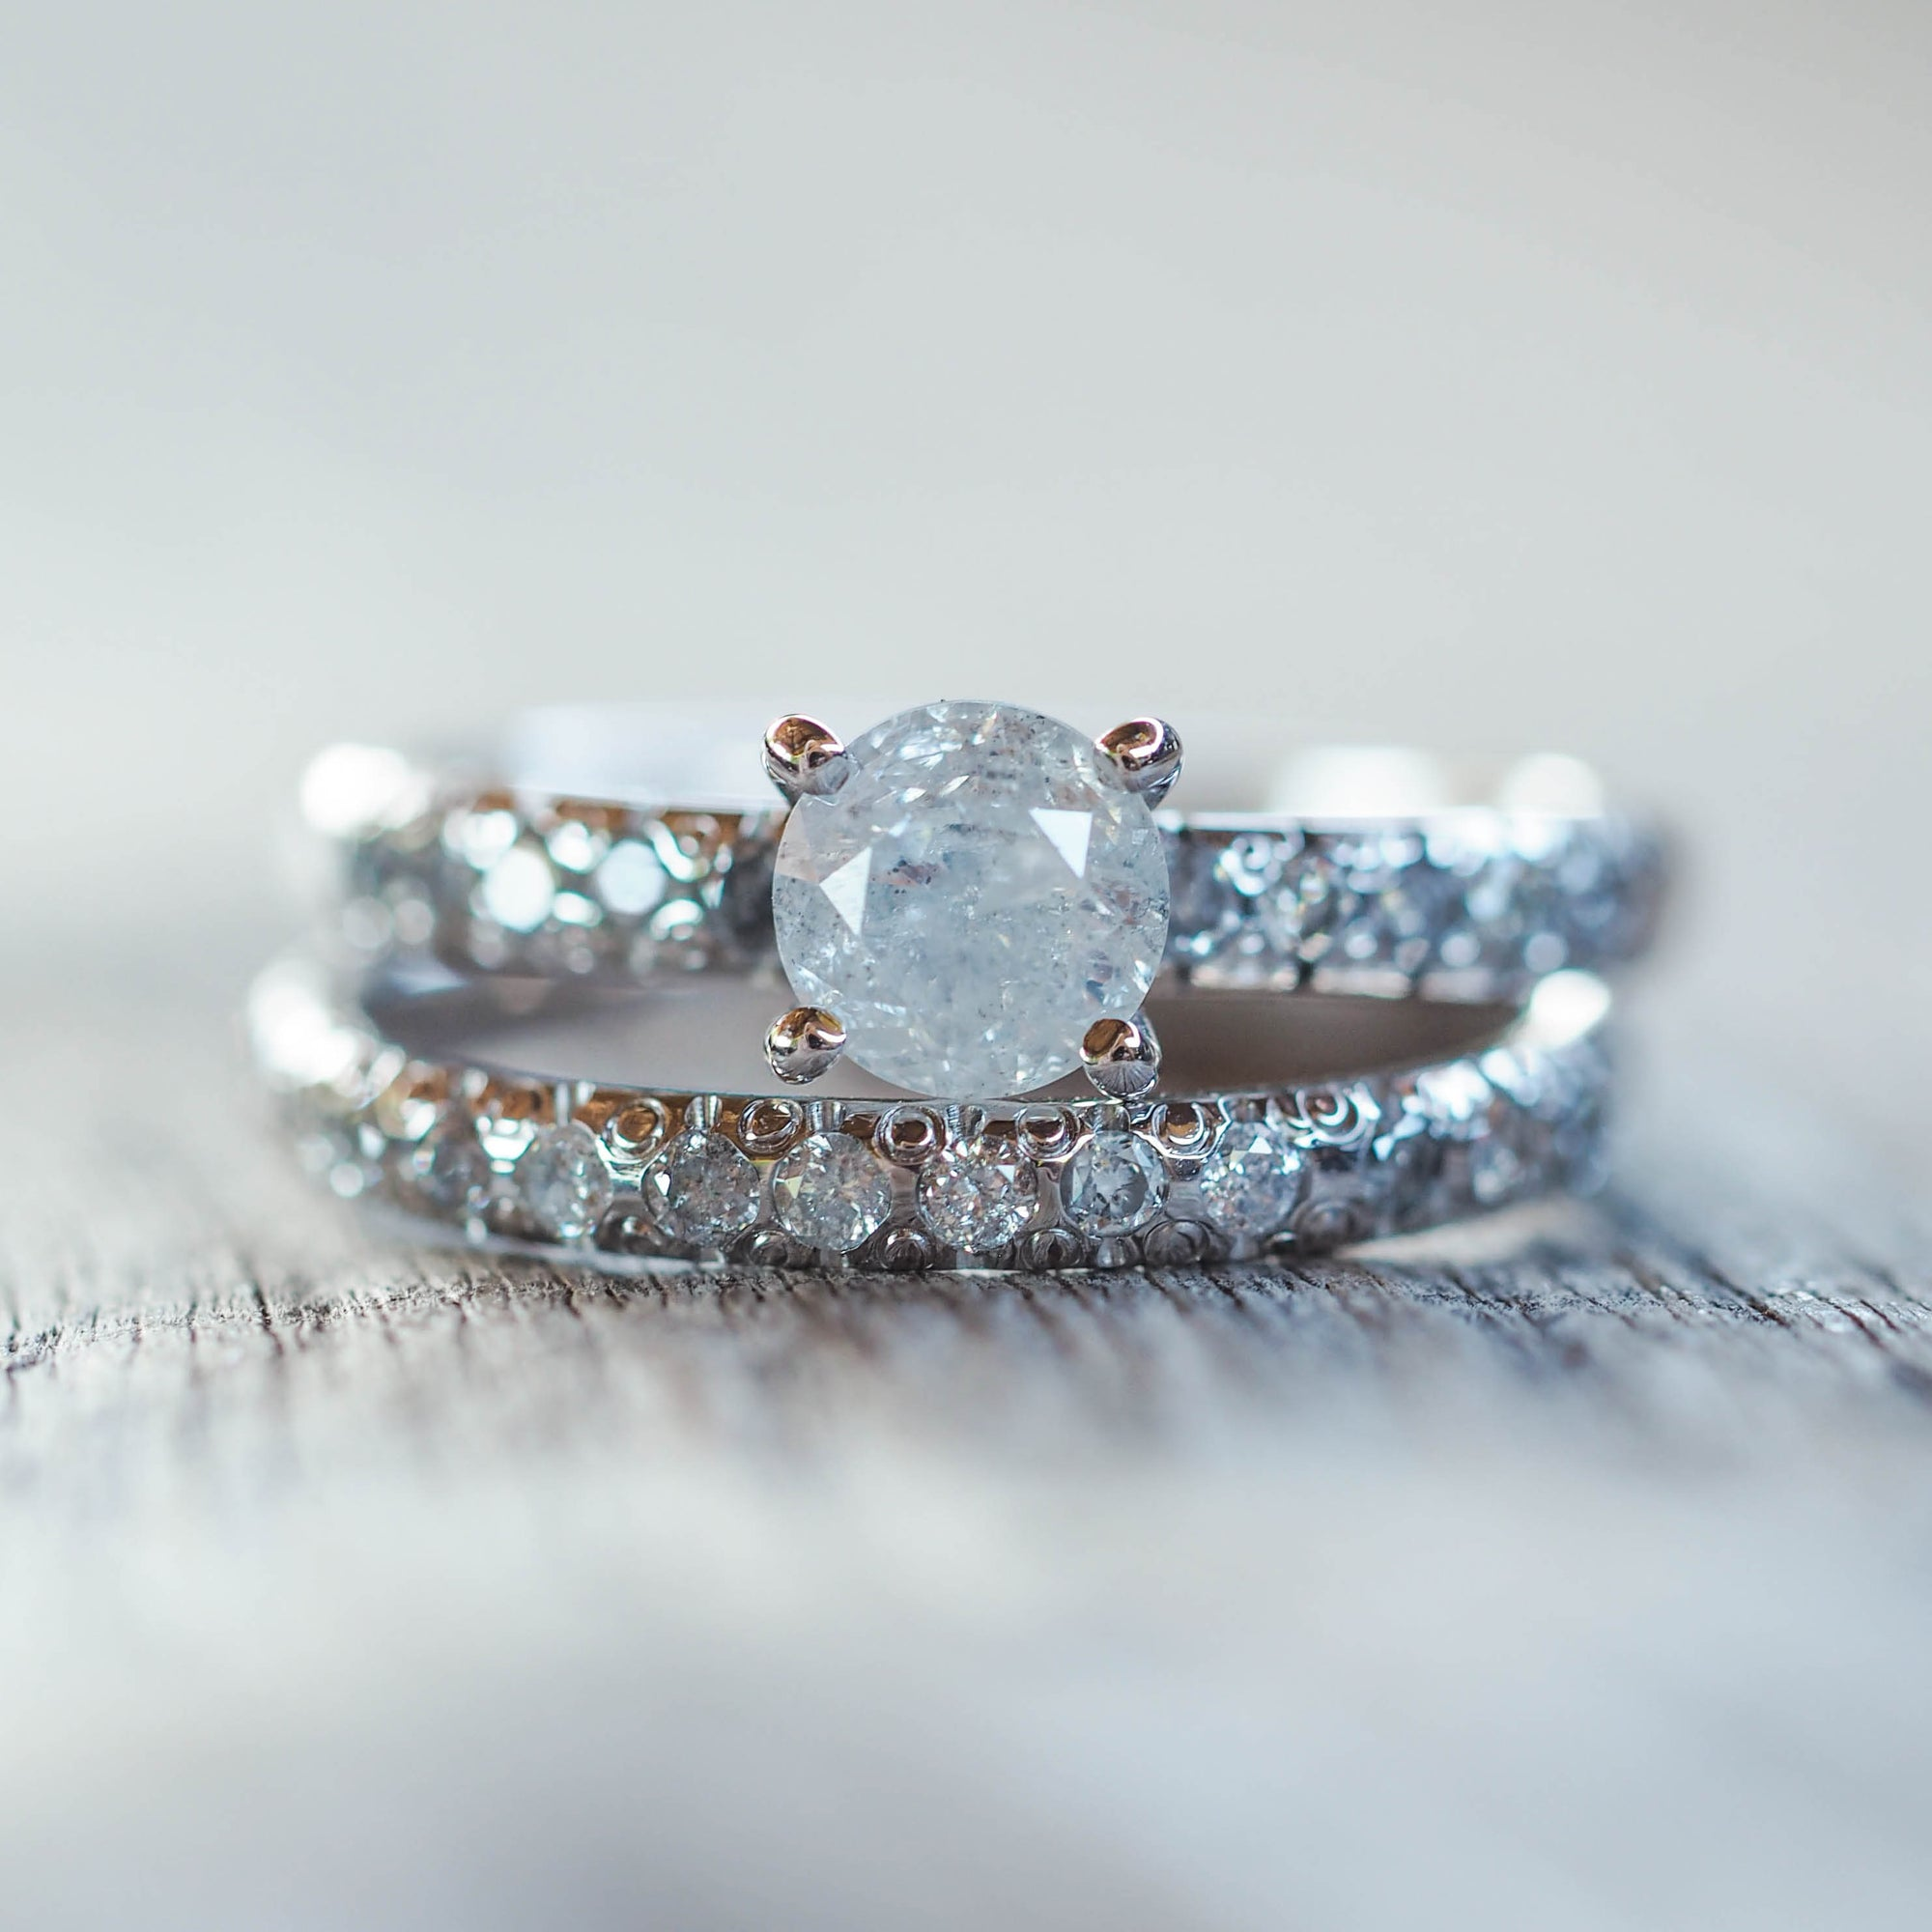 Icy White Diamond Ring Set